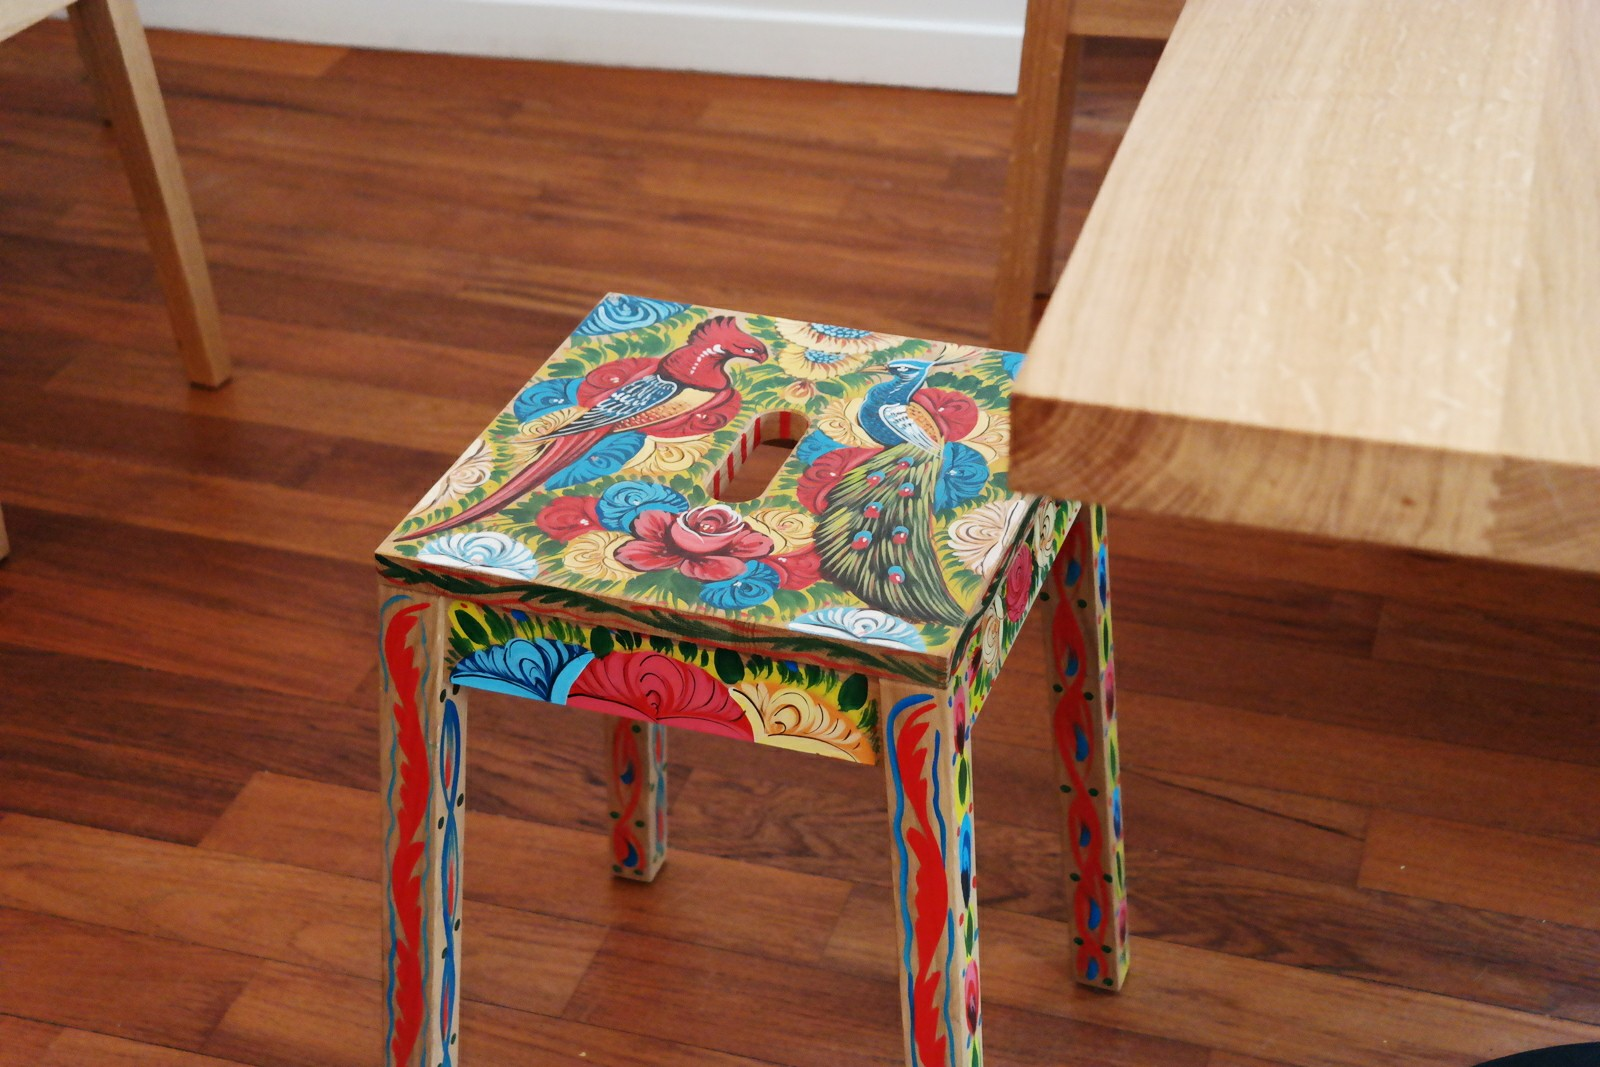 Tabouret-by-Pakistani-Truck-Art-Pakistanais-stool-au-Rice-Trotters-restaurant-concept-riz-déco-intérieure-photo-by-united-states-of-paris-blog